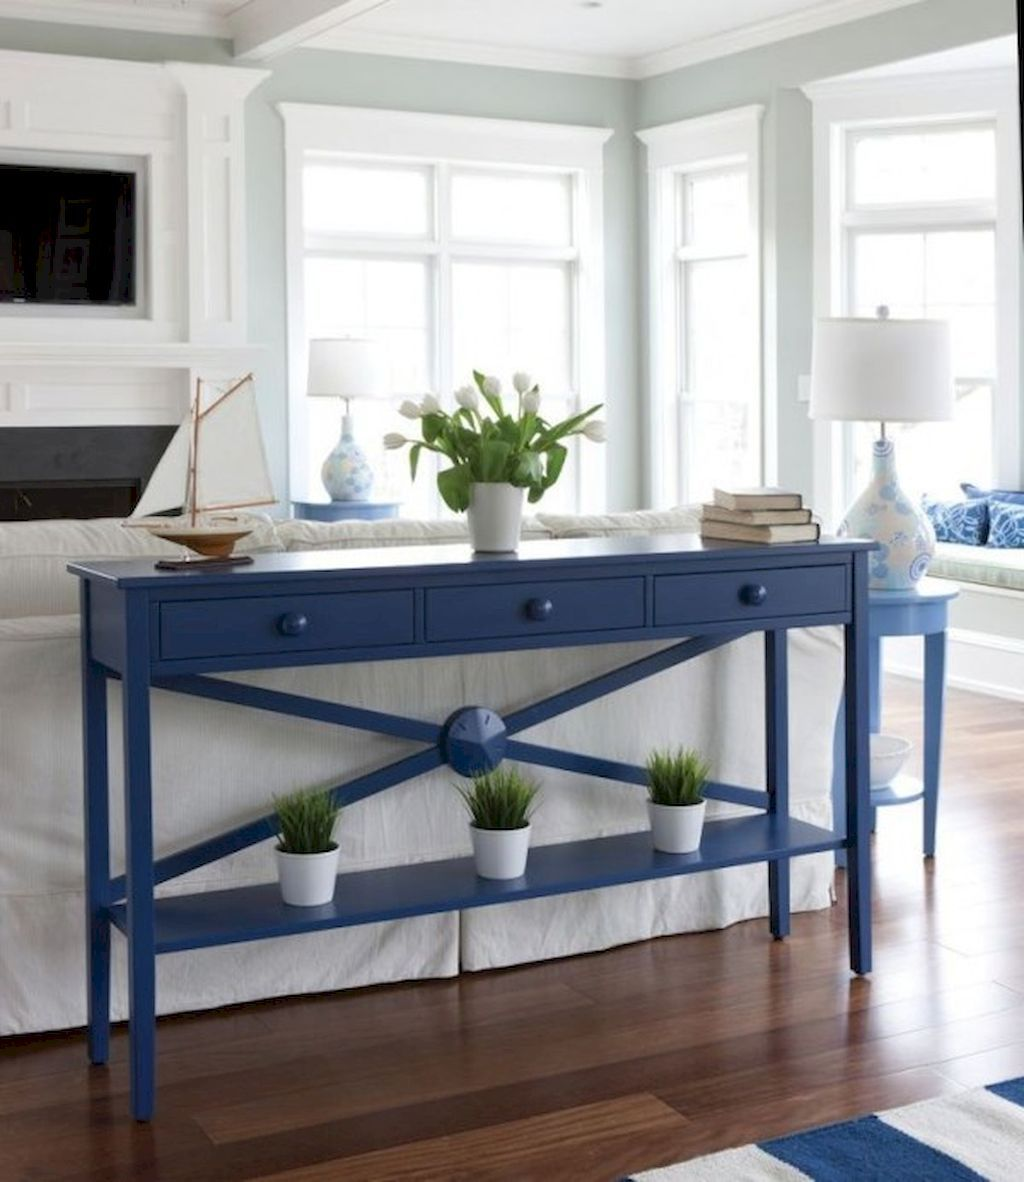 Cool Living Room Interior Design: 70 Cool And Clean Coastal Living Room Decorating Ideas (3